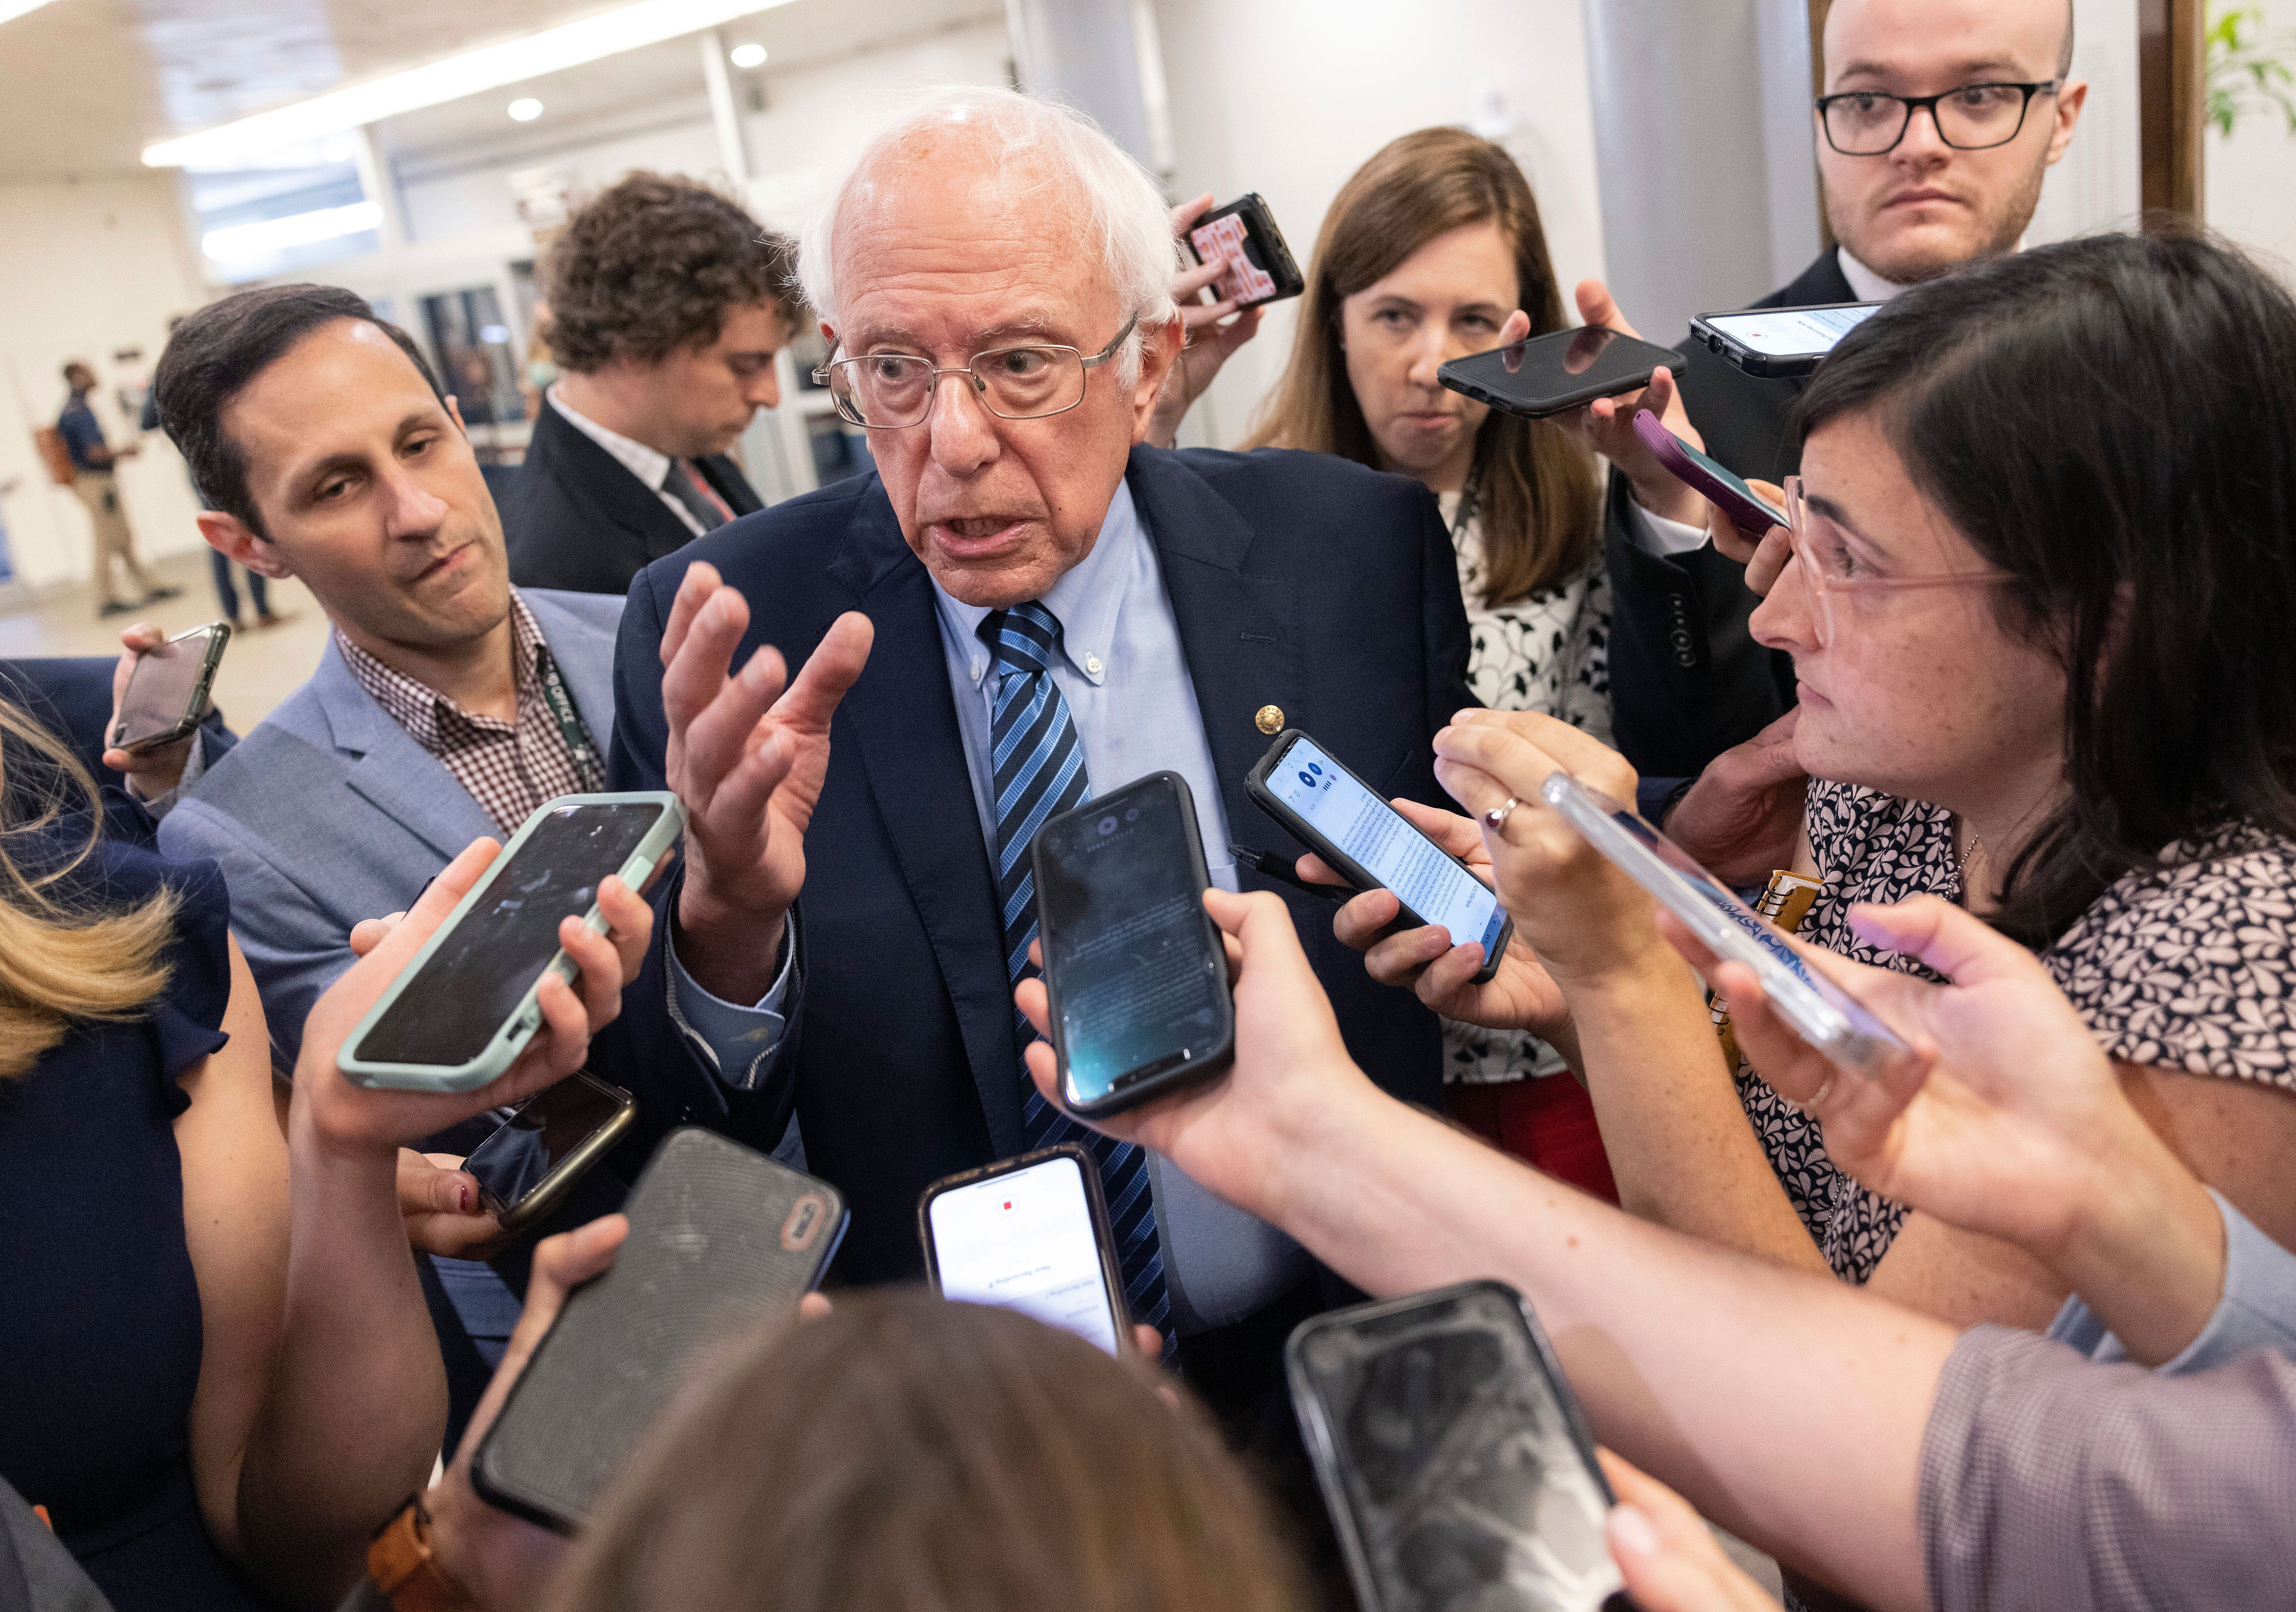 Sen. Bernie Sanders (I-Vt.) speaking to reporters about infrastructure legislation at the Capitol on Wednesday.